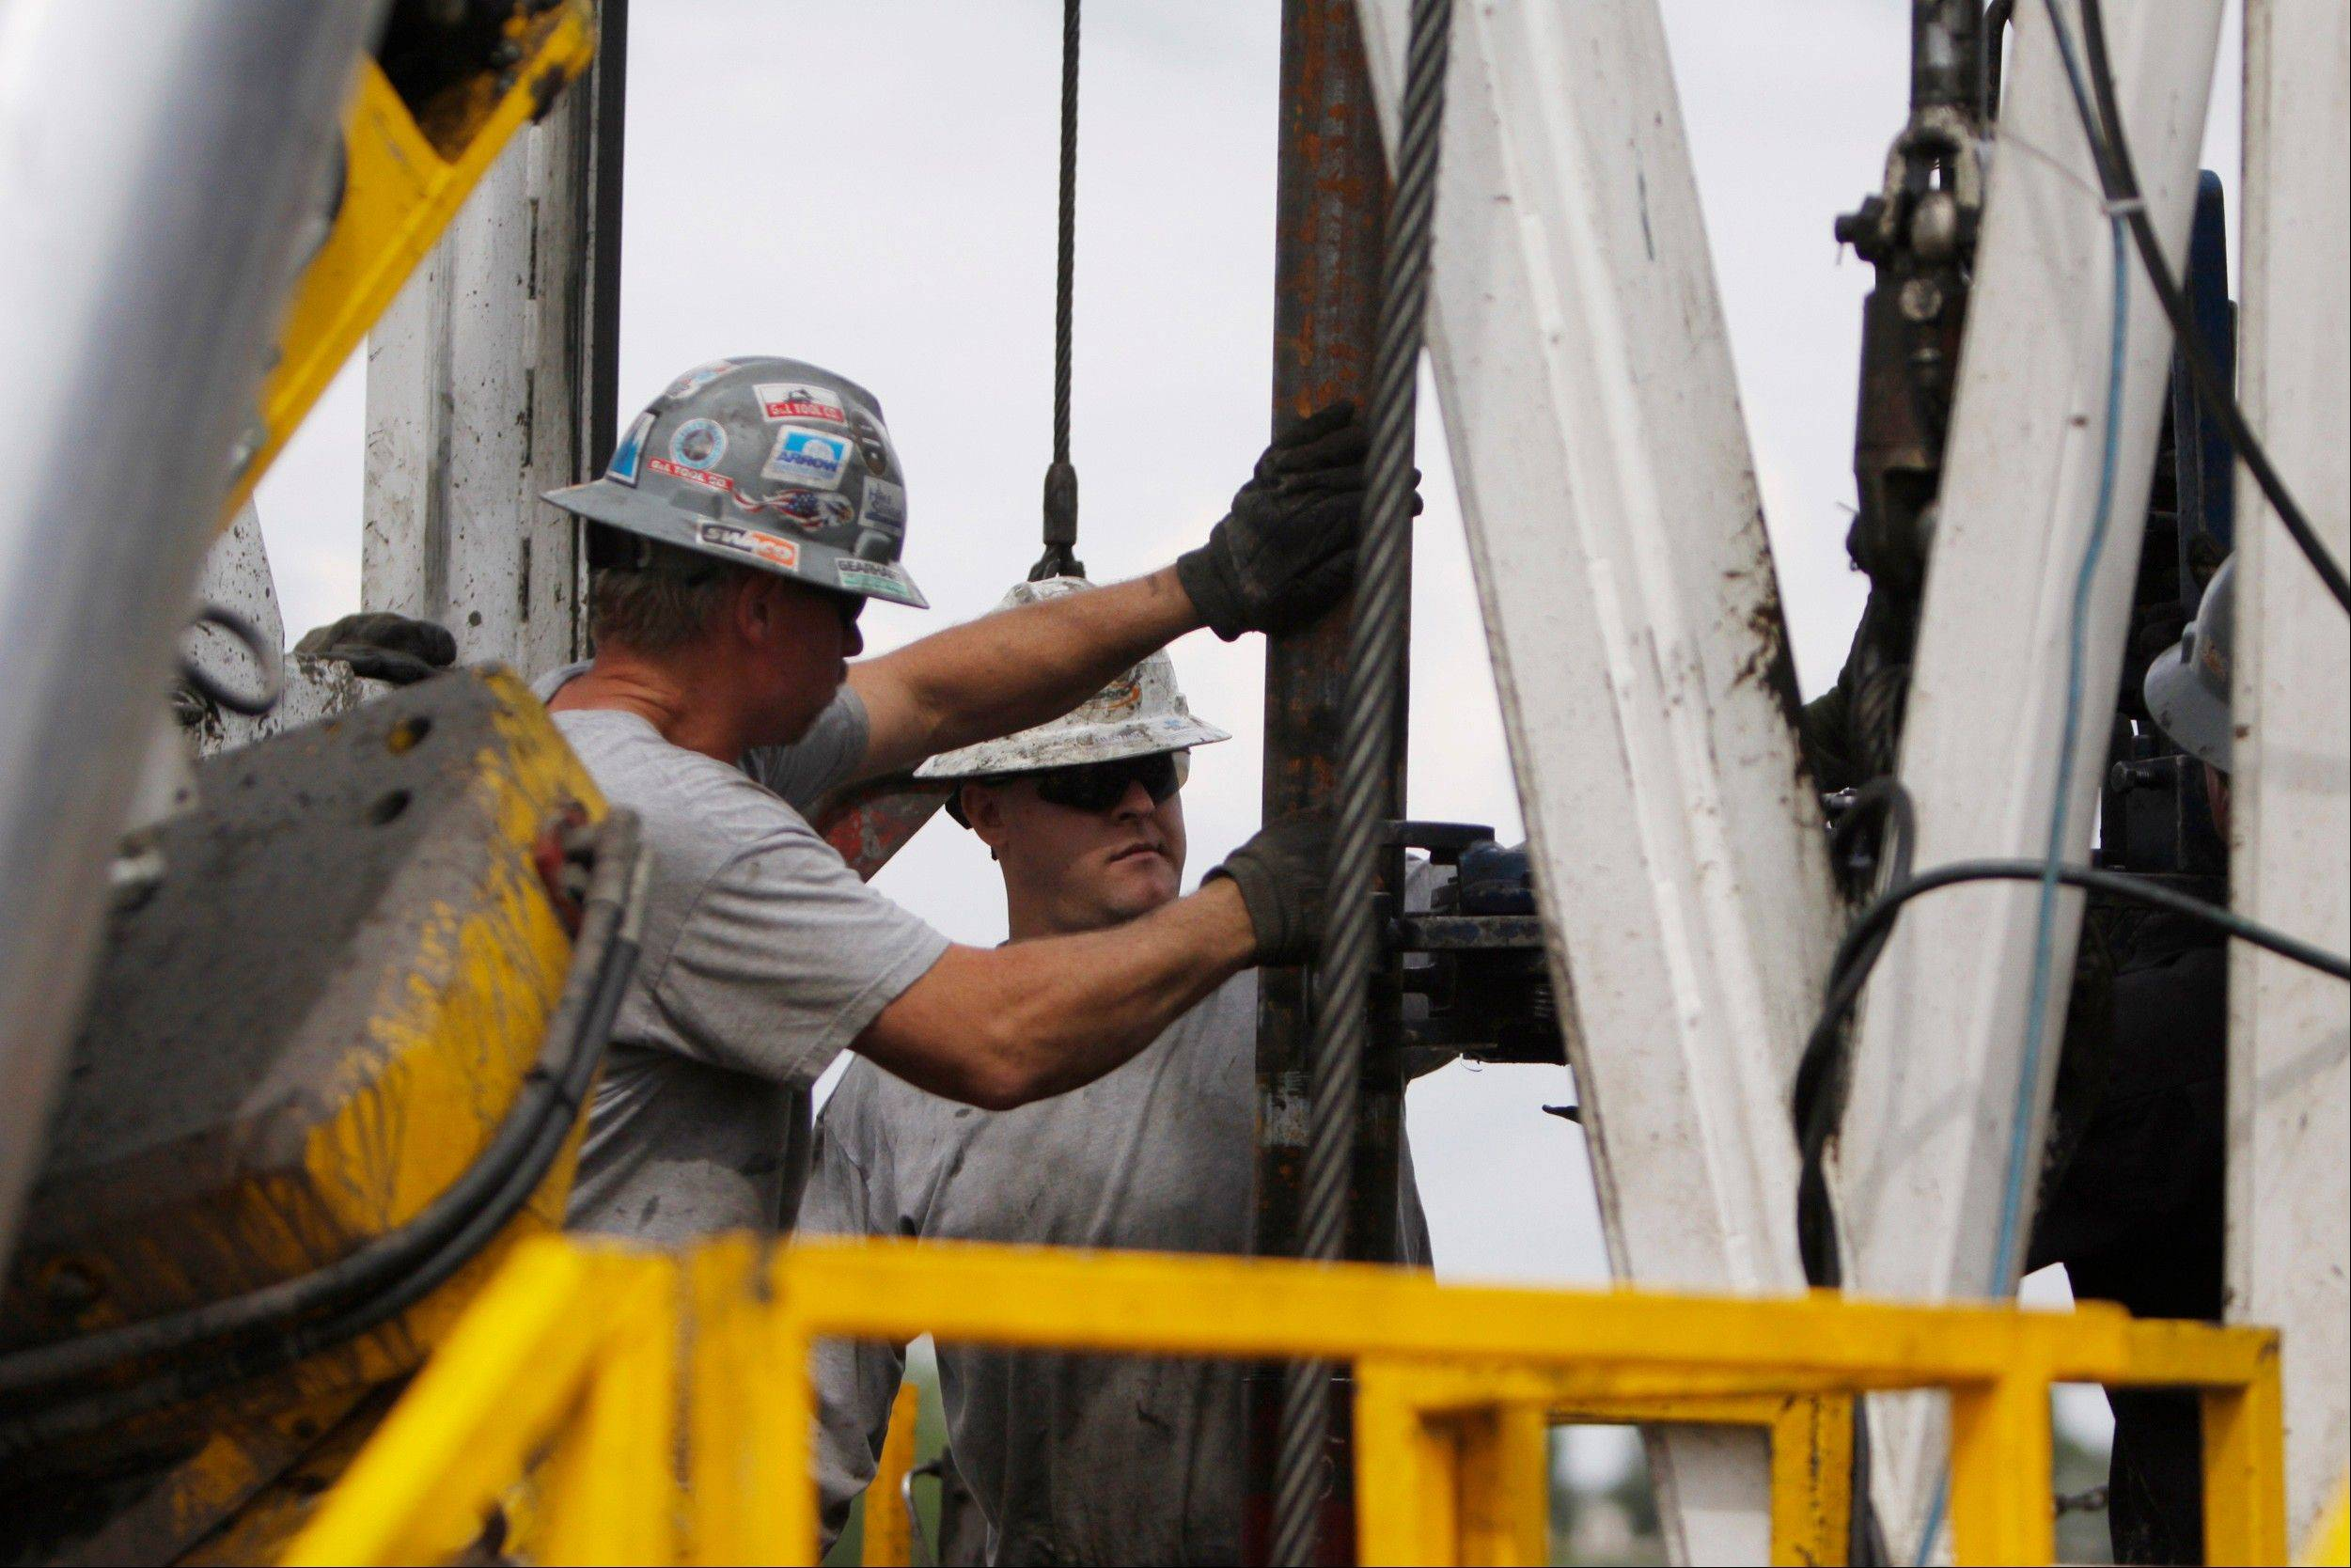 Associated Press/Aug. 25, 2009Crew members with Anadarko Petroleum Corp., work on a drilling platform on a Weld County farm near Mead, Colo. The drilling process called hydraulic fracturing, or fracking, is shaking up world energy markets from Washington to Moscow to Beijing. Some predict what was once unthinkable: that the U.S. won't need to import natural gas in the near future. But pollution concerns remain.